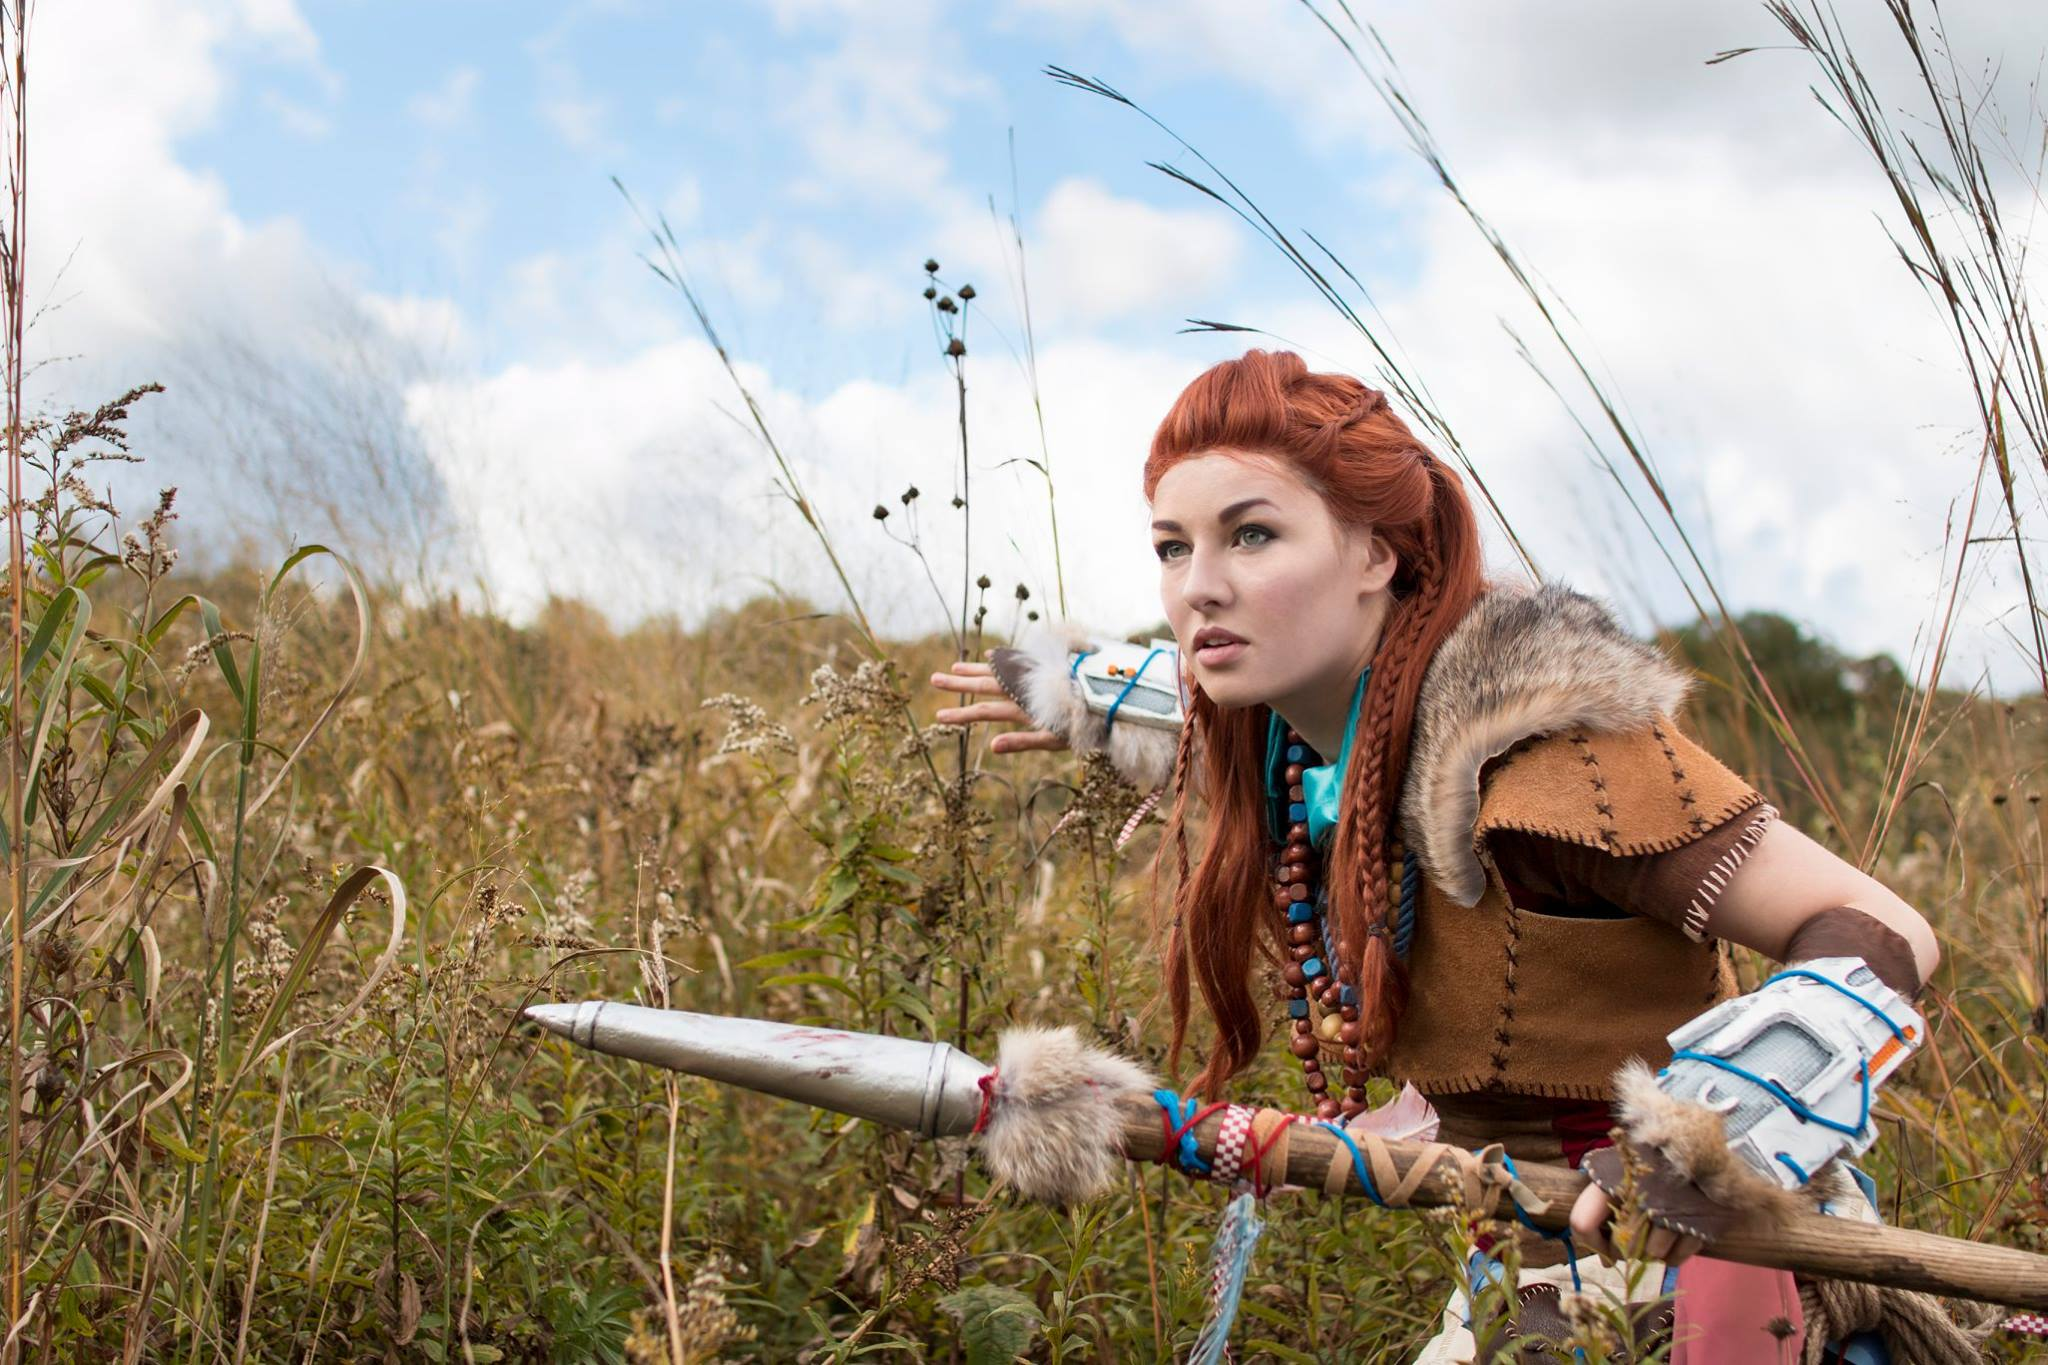 Aloy Horizon Zero Dawn Cosplay Wallpapers HD